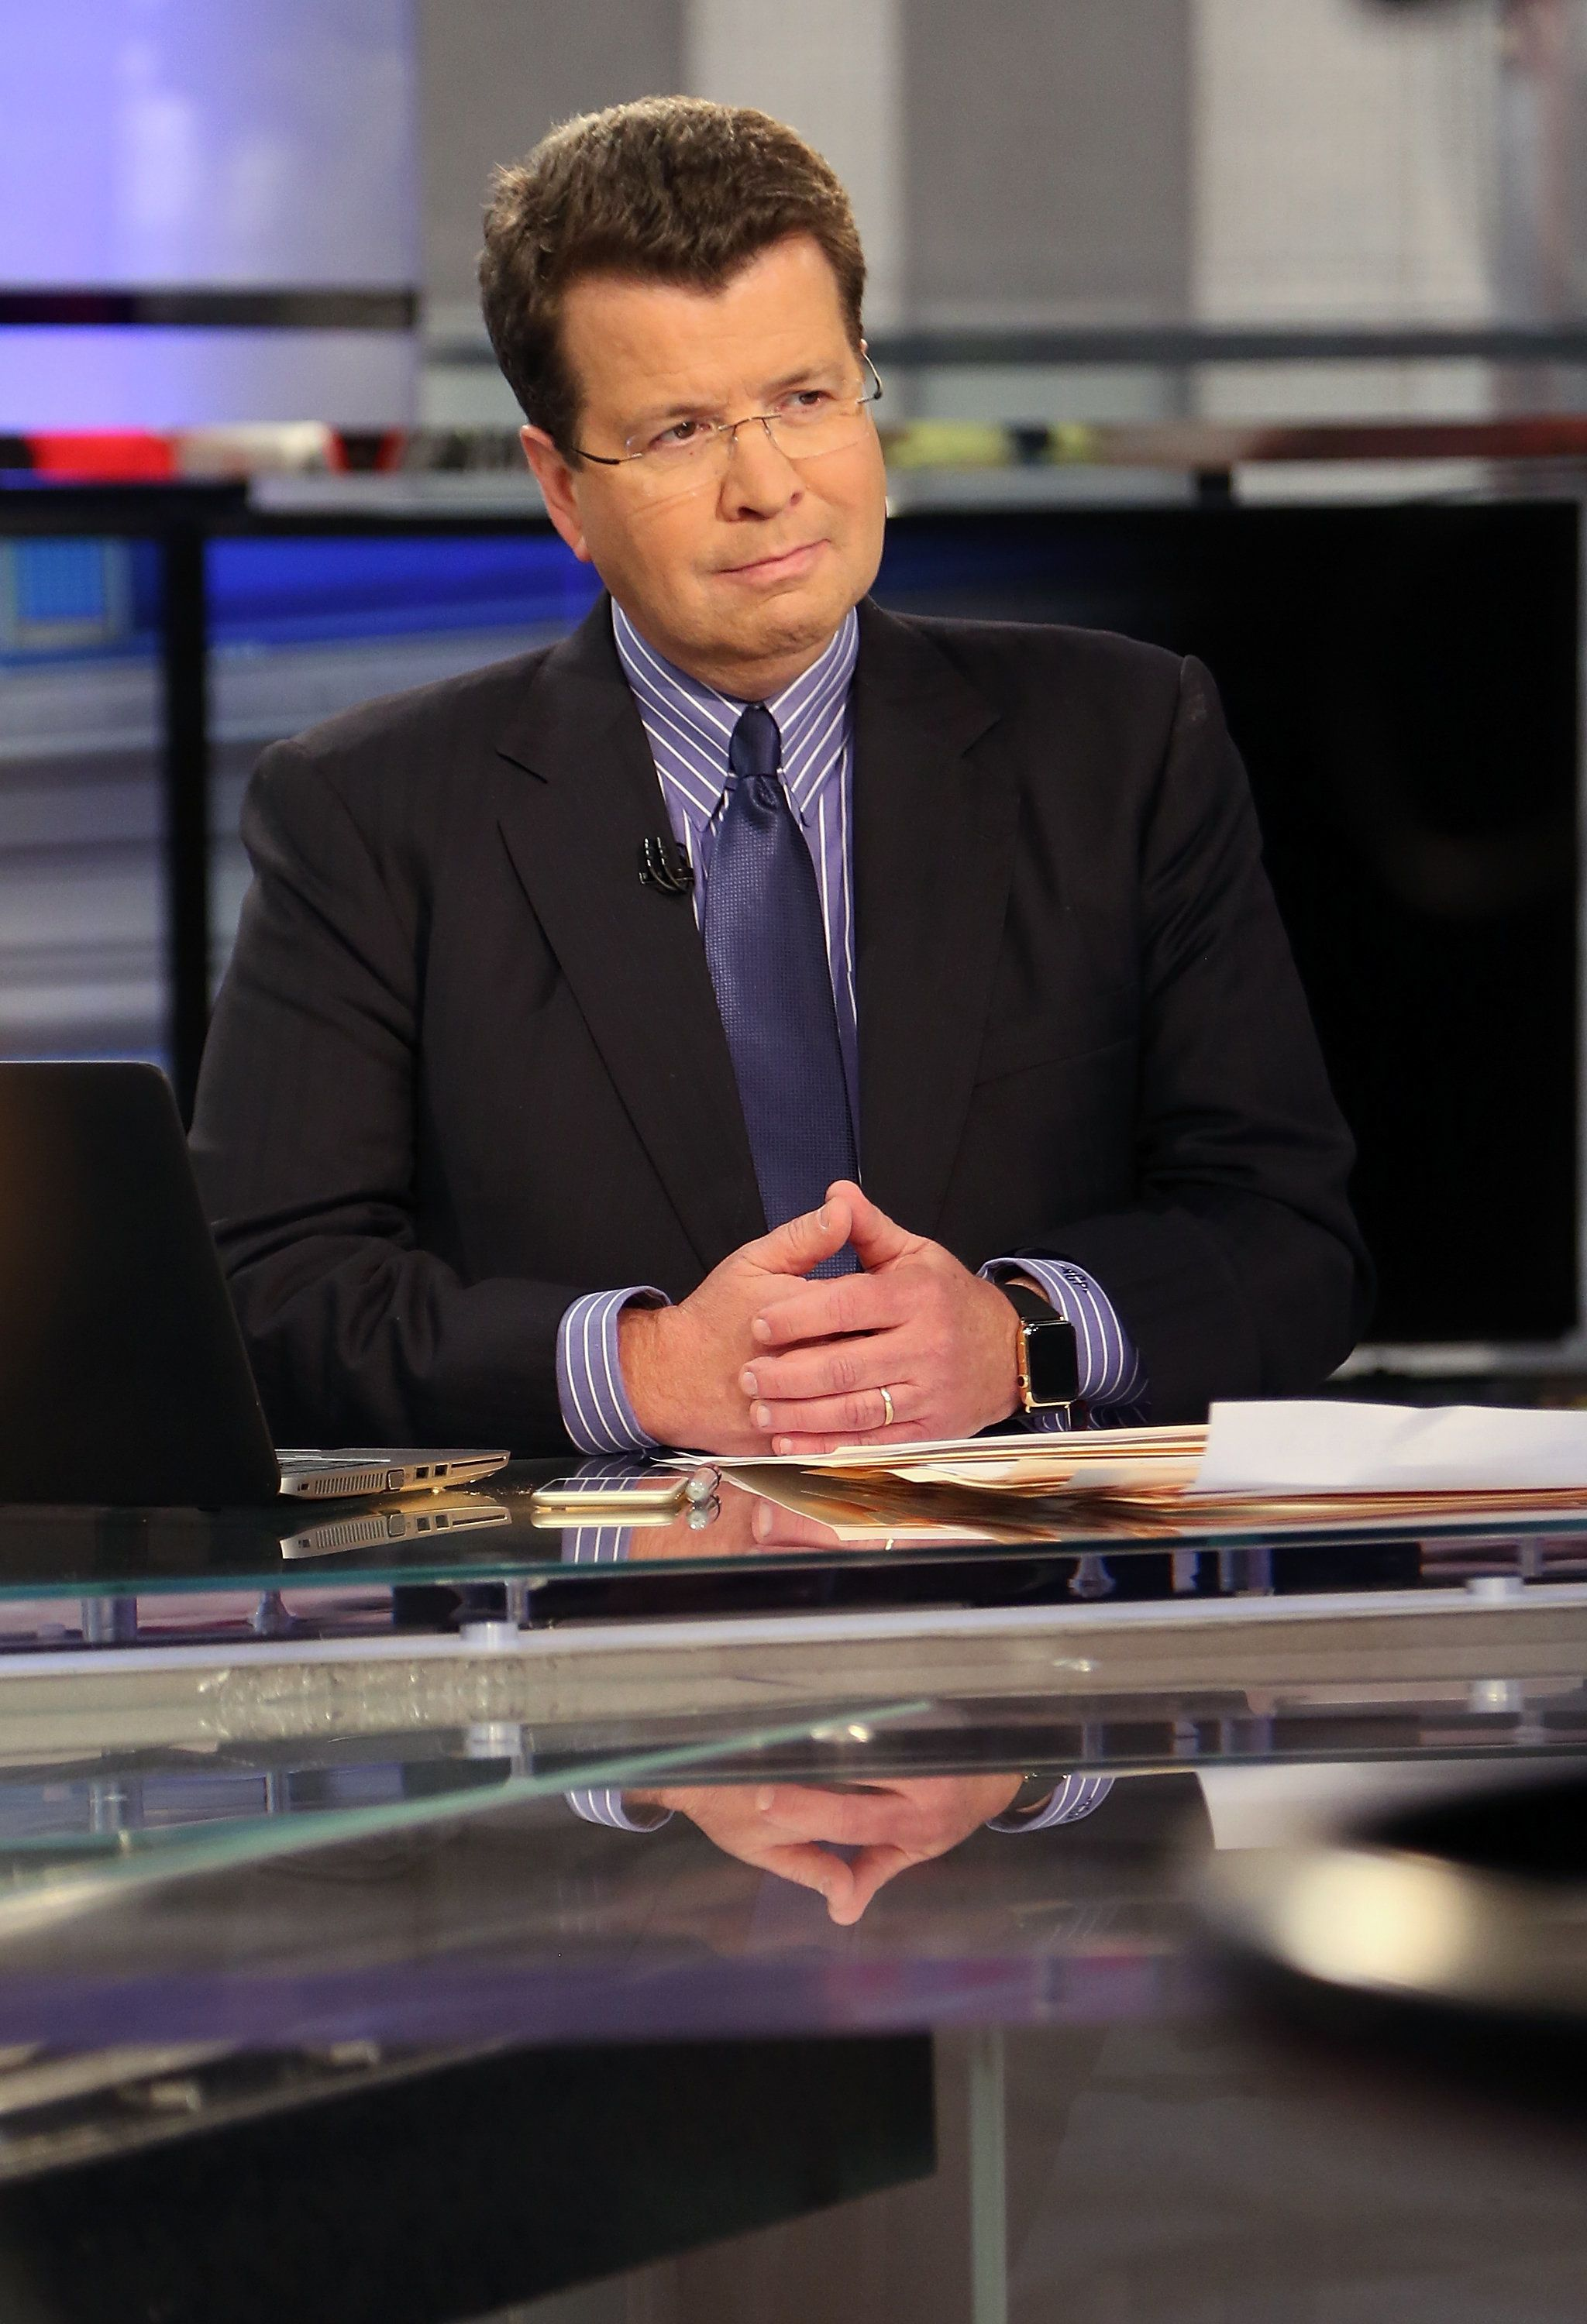 NEW YORK, NY - JUNE 17: Fox Business Network anchor Neil Cavuto, speaks with Paul Volcker, when he visits FOX Business Network's 'CAVUTO: Coast To Coast' at FOX Studios on June 17, 2015 in New York City.  (Photo by Monica Schipper/Getty Images)